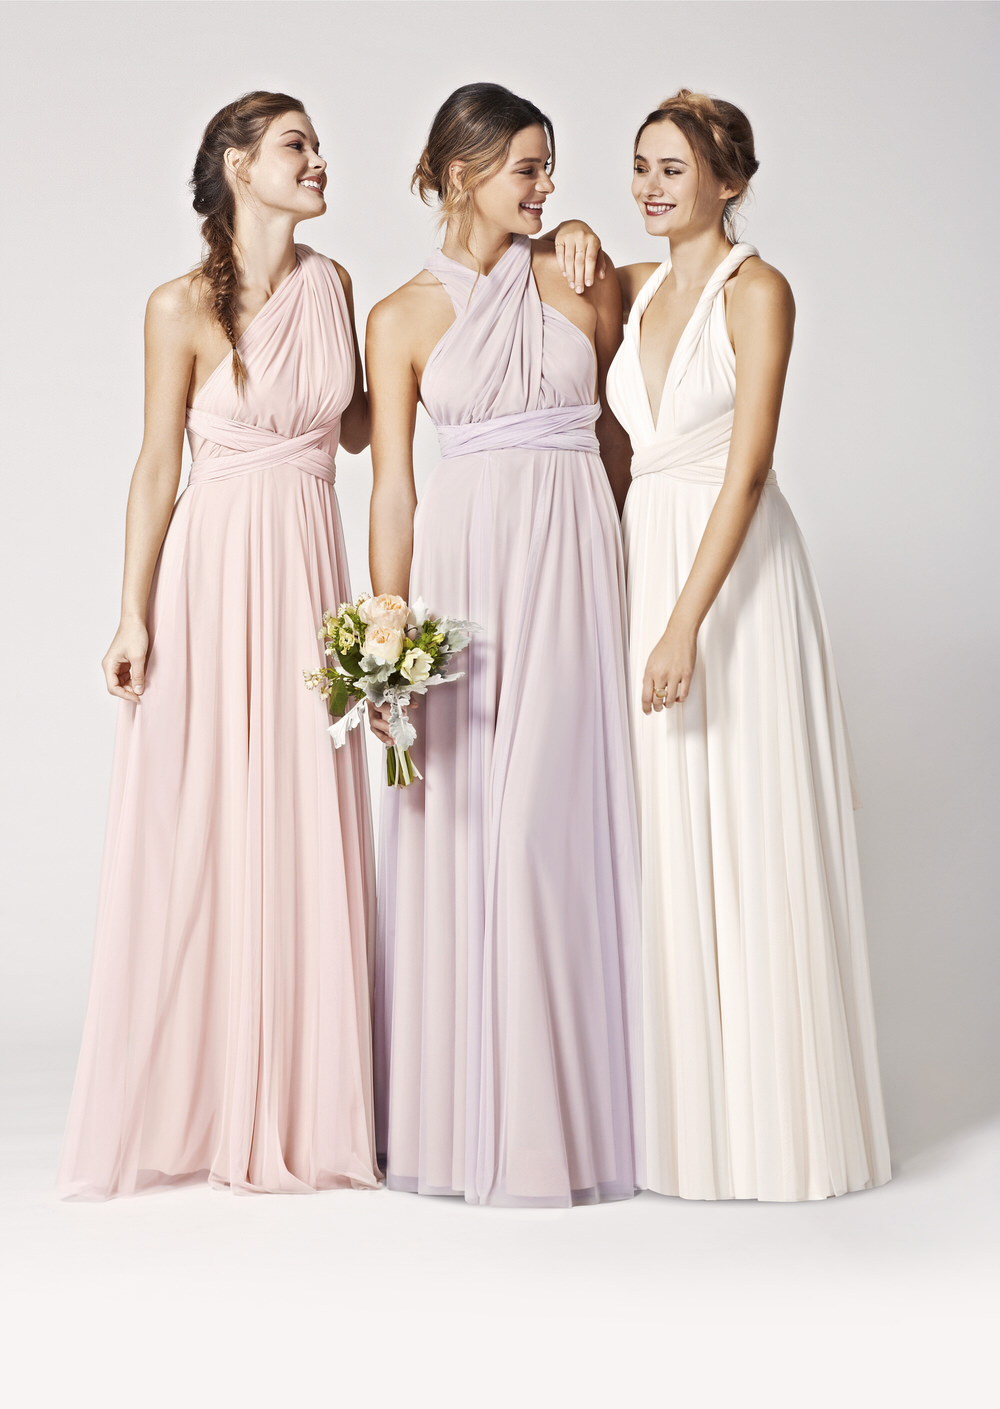 Twobirds rock my wedding uk wedding blog directory tulle multiway ballgowns in petal lilac cream ombrellifo Image collections